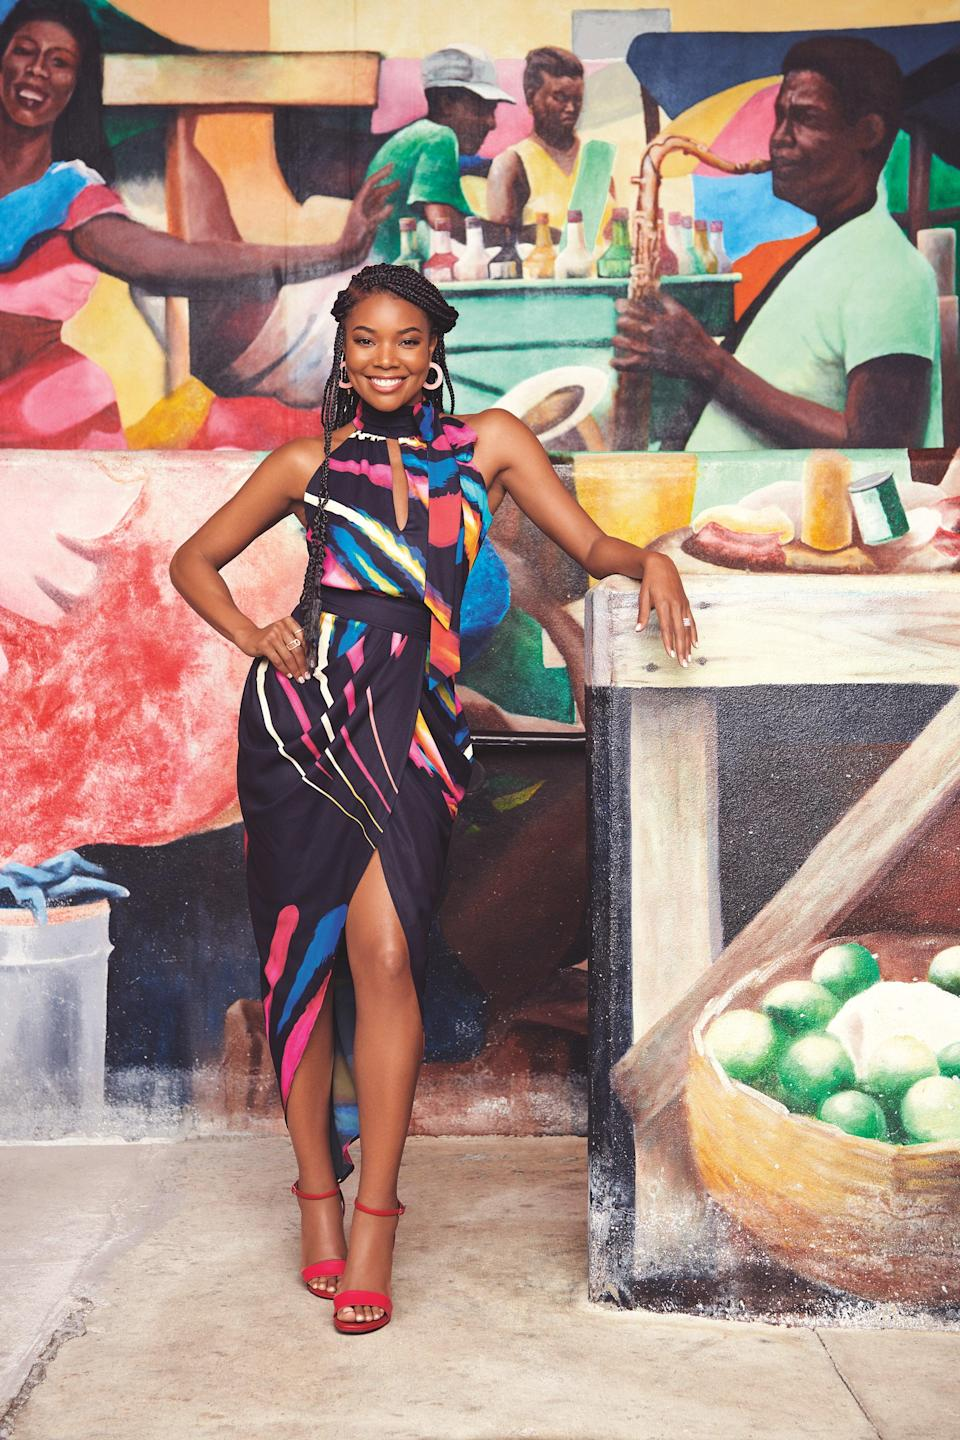 """<br> <br> <strong>New York & Company x Gabrielle Union</strong> Print Halter Top, $, available at <a href=""""https://go.skimresources.com/?id=30283X879131&url=https%3A%2F%2Fwww.nyandcompany.com%2Fprint-halter-top-gabrielle-union-collection%2FA-prod20620045%2F%3FAn%3D675084437%26prodNo%3D10"""" rel=""""nofollow noopener"""" target=""""_blank"""" data-ylk=""""slk:New York & Company"""" class=""""link rapid-noclick-resp"""">New York & Company</a> <br> <br> <strong>New York & Company x Gabrielle Union</strong> Print Tie Waist Skirt, $, available at <a href=""""https://go.skimresources.com/?id=30283X879131&url=https%3A%2F%2Fwww.nyandcompany.com%2Fprint-tie-waist-skirt-gabrielle-union-collection%2FA-prod20620053%2F%3FAn%3D675084437%26prodNo%3D0"""" rel=""""nofollow noopener"""" target=""""_blank"""" data-ylk=""""slk:New York & Company"""" class=""""link rapid-noclick-resp"""">New York & Company</a> <span class=""""copyright"""">Photographed by Nino Muñoz.</span>"""